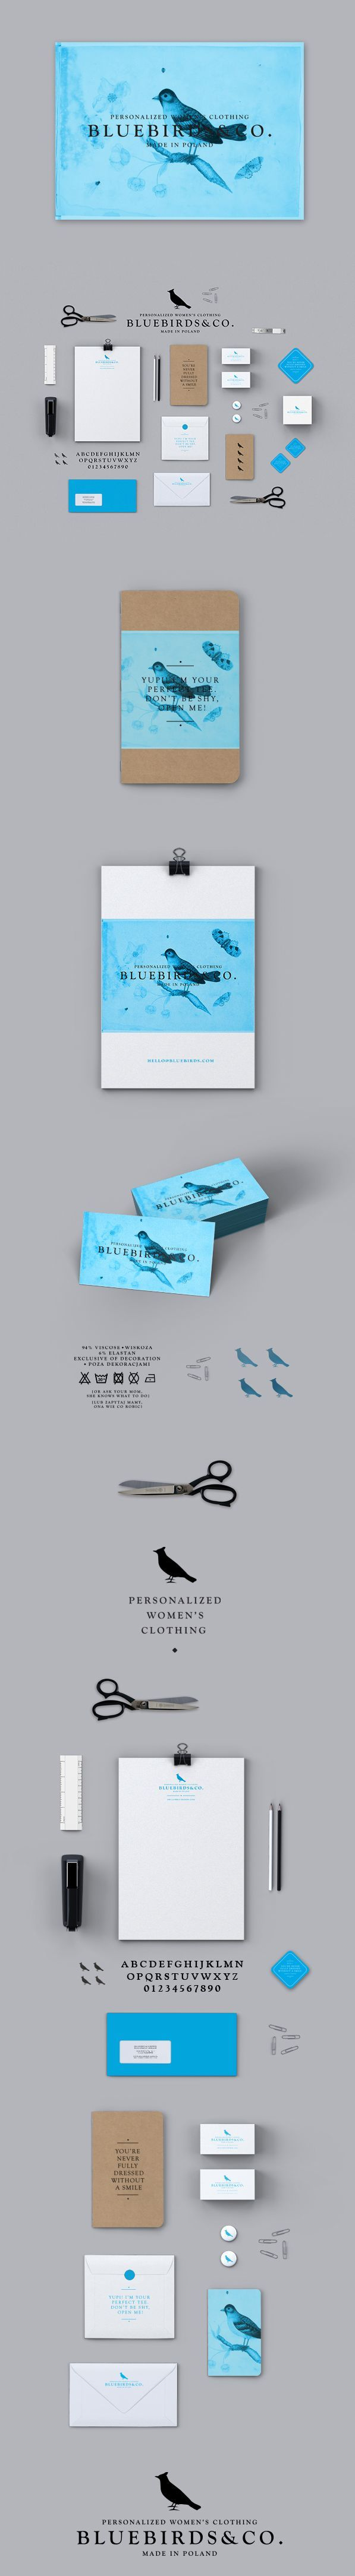 Bluebirds&Co. | #stationary #corporate #design #corporatedesign #identity #branding #marketing < repinned by www.BlickeDeeler.de | Visit our website: www.blickedeeler.de/leistungen/corporate-design